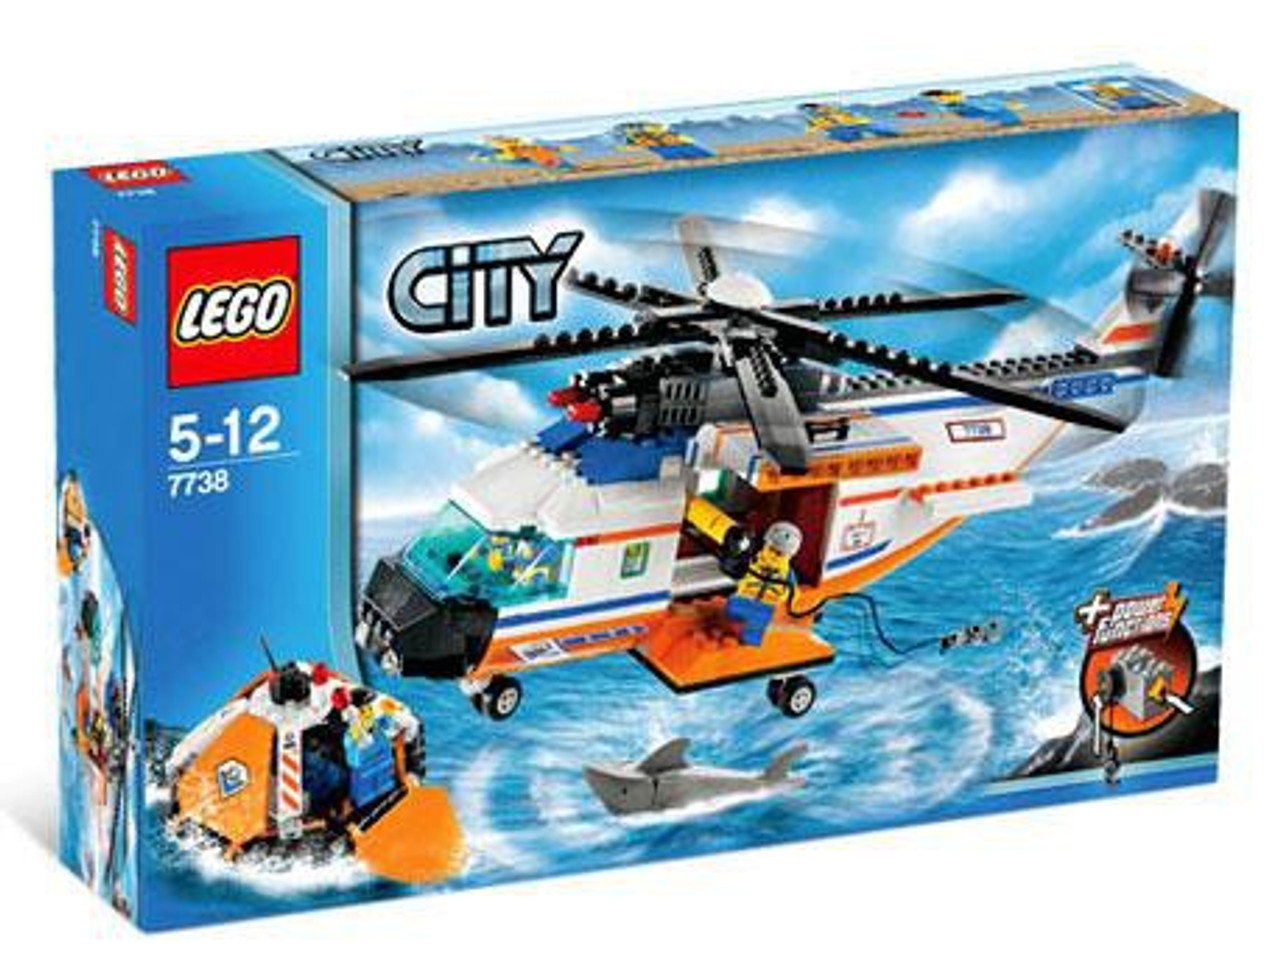 LEGO City Coast Guard Helicopter & Life Raft Set #7738